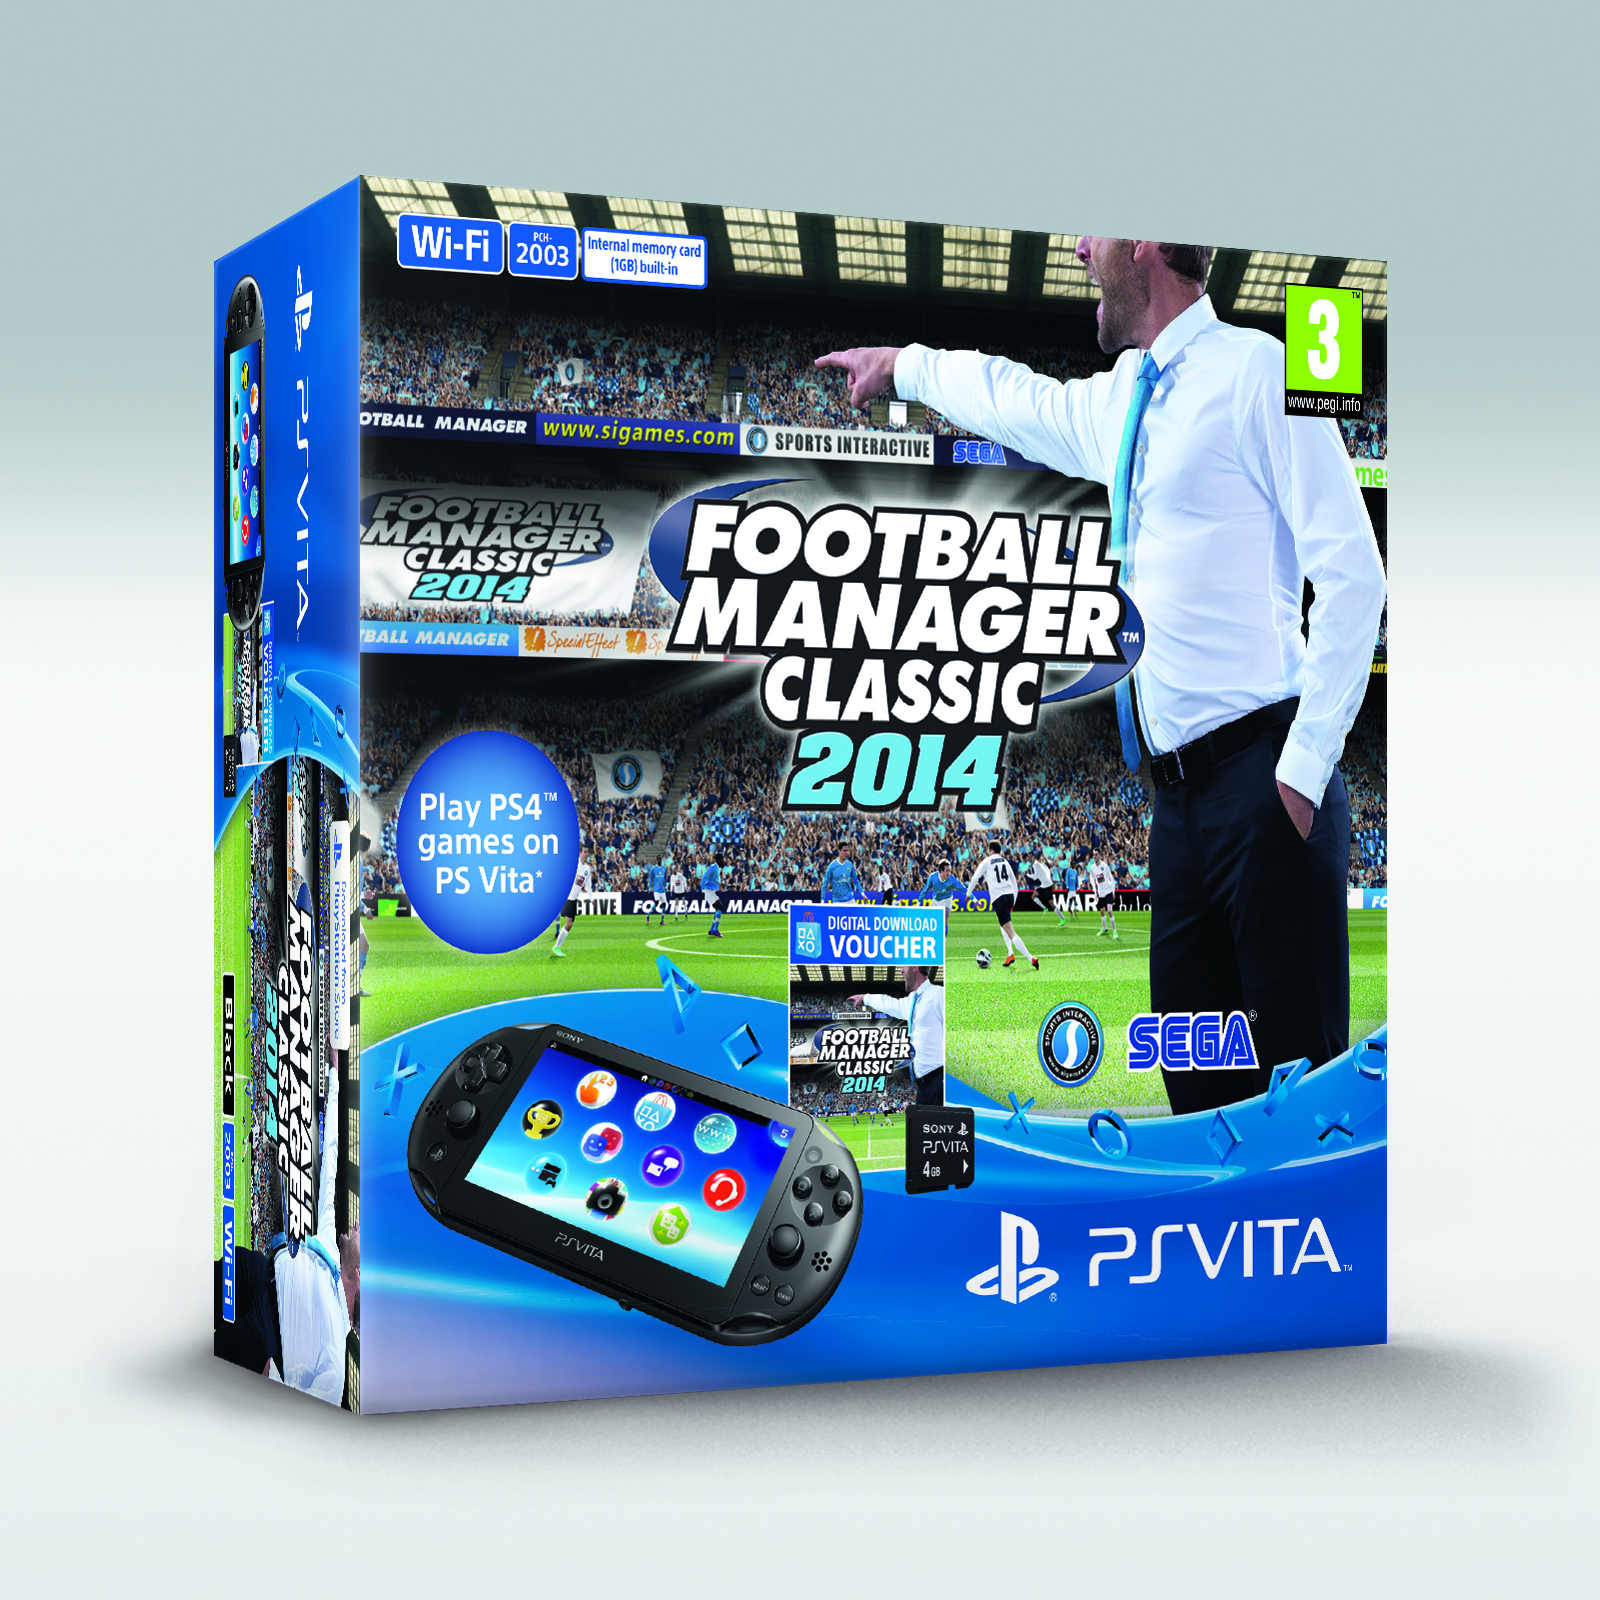 Sports Interactive will kick off sales of its Football Manager Classic 2014 PS Vita bundle in UK stores on April 17th